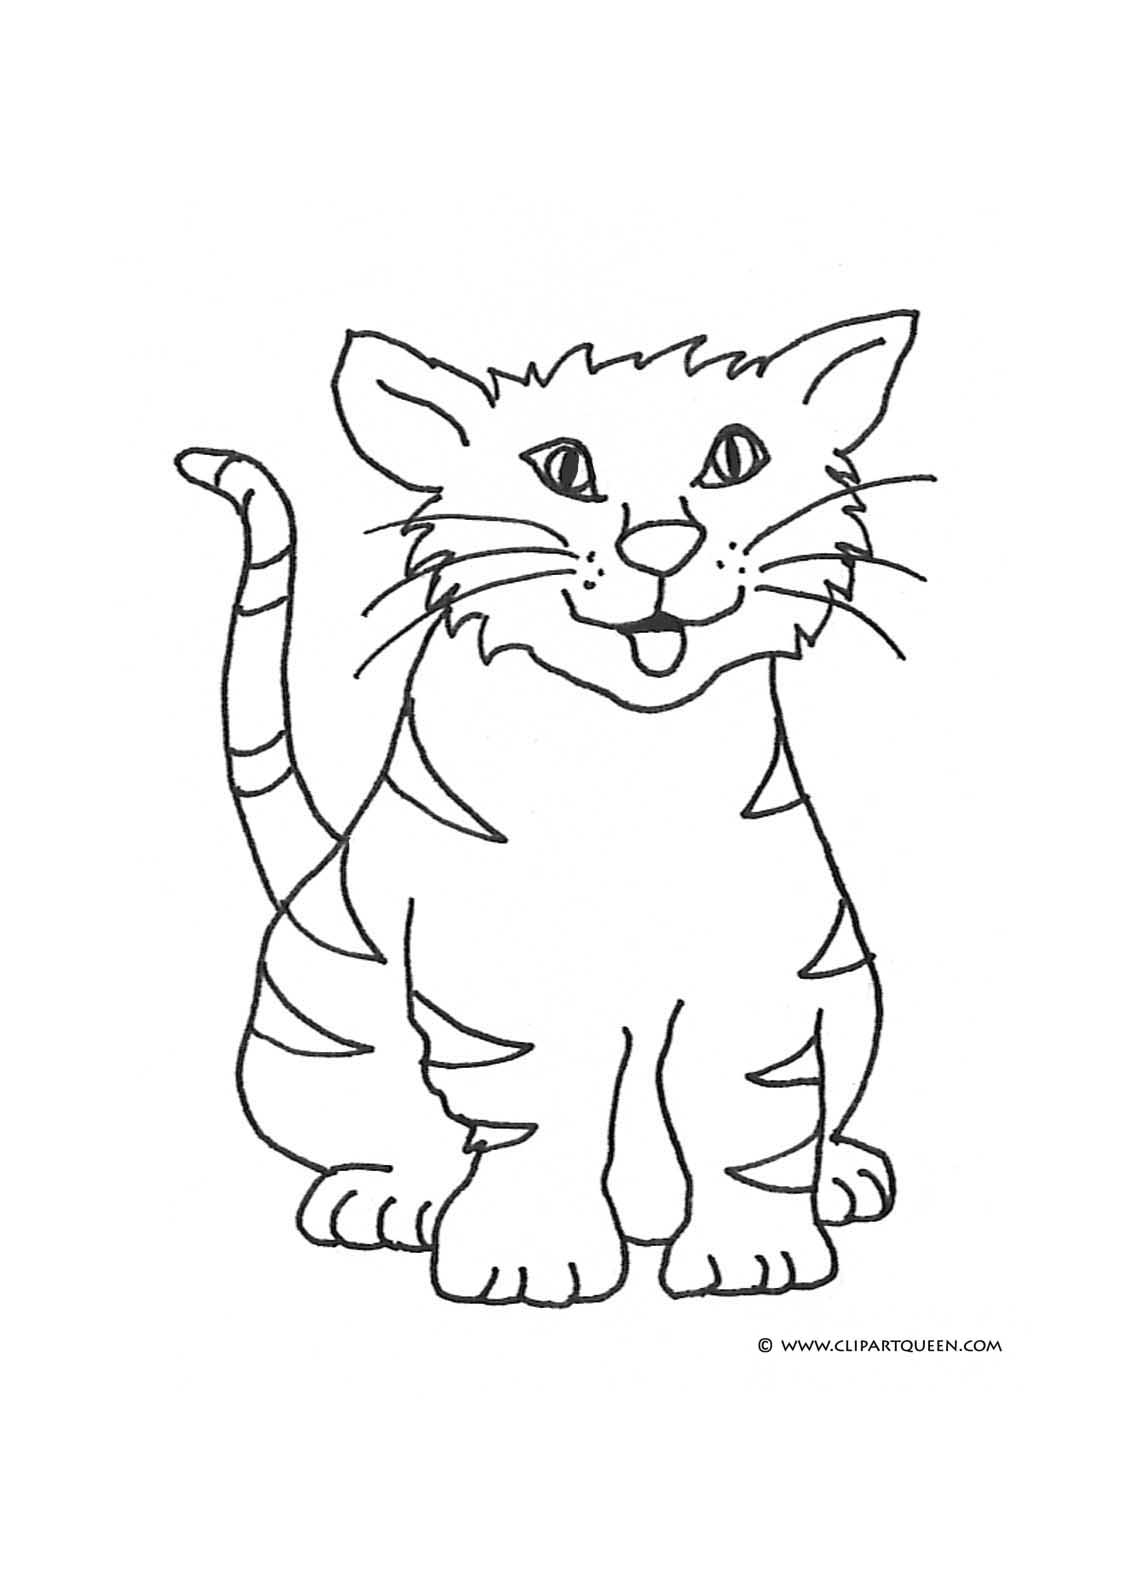 Cat Drawing Clip Art At Getdrawings Com Free For Personal Use Cat